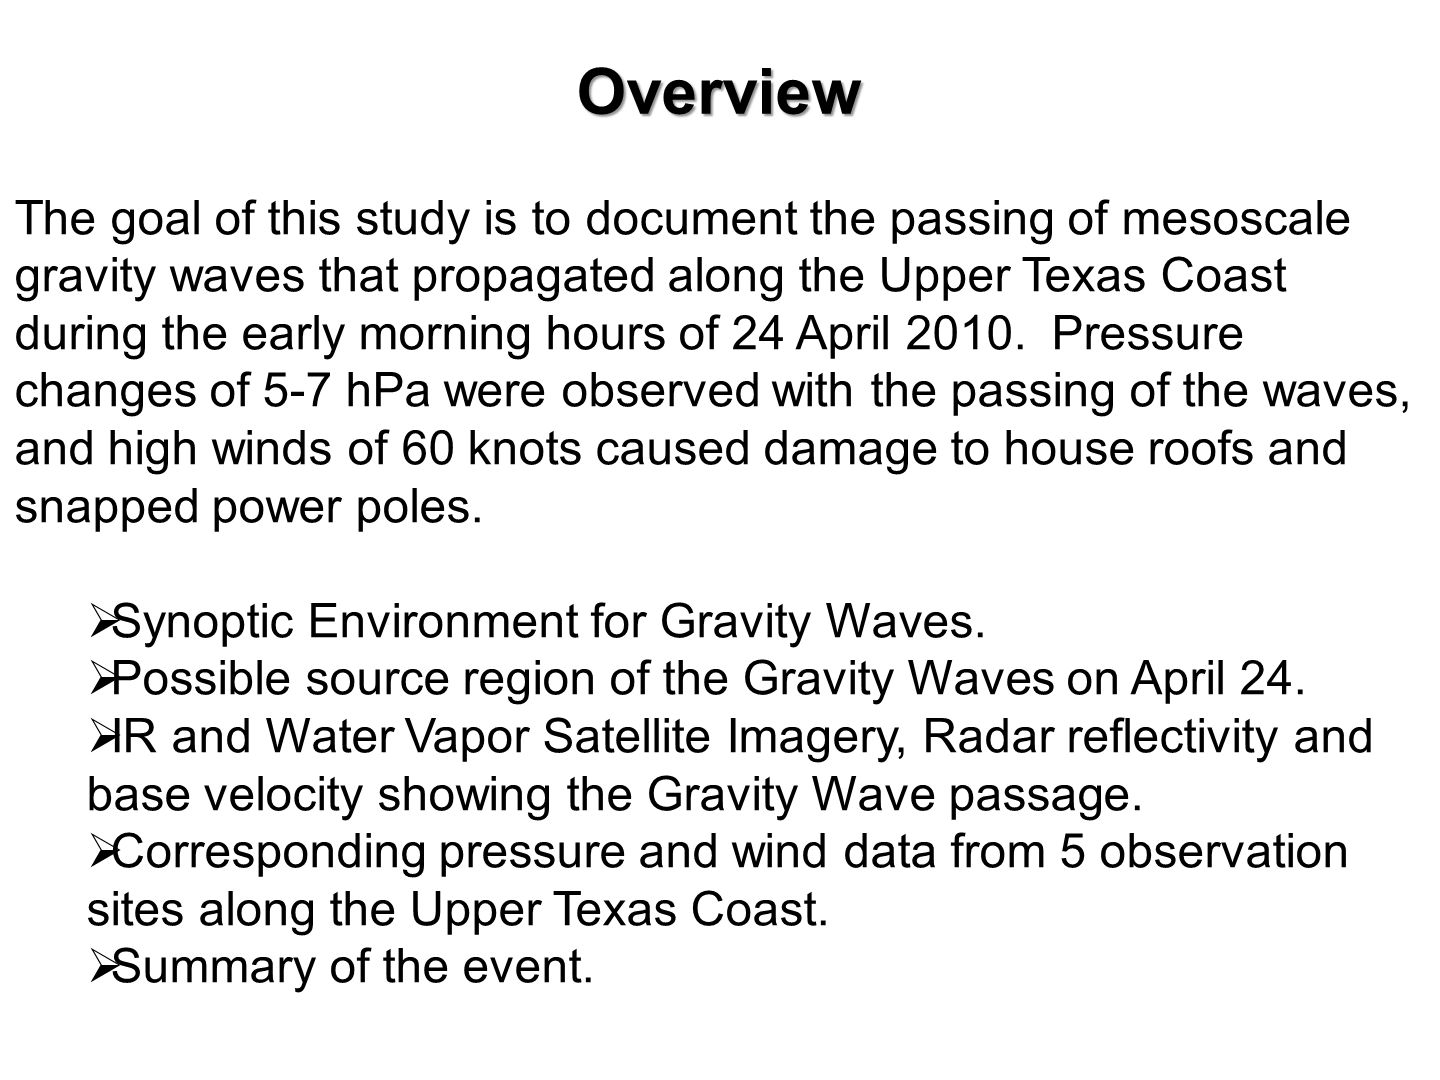 Overview The goal of this study is to document the passing of mesoscale gravity waves that propagated along the Upper Texas Coast during the early morning hours of 24 April 2010.